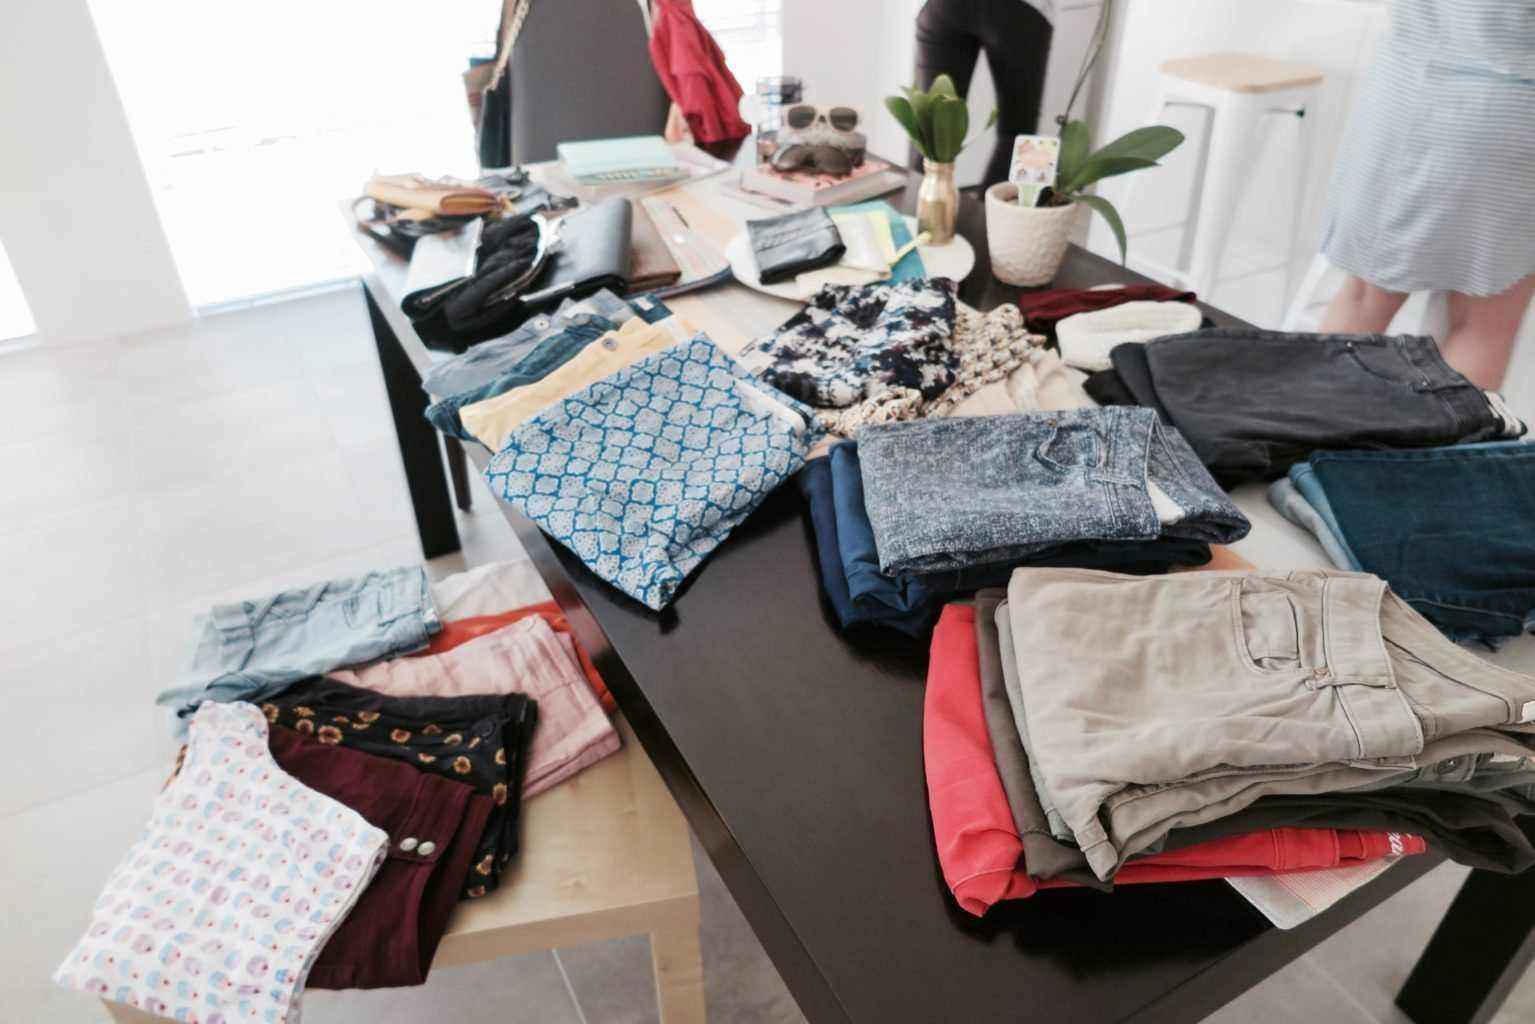 How to host a clothes swap